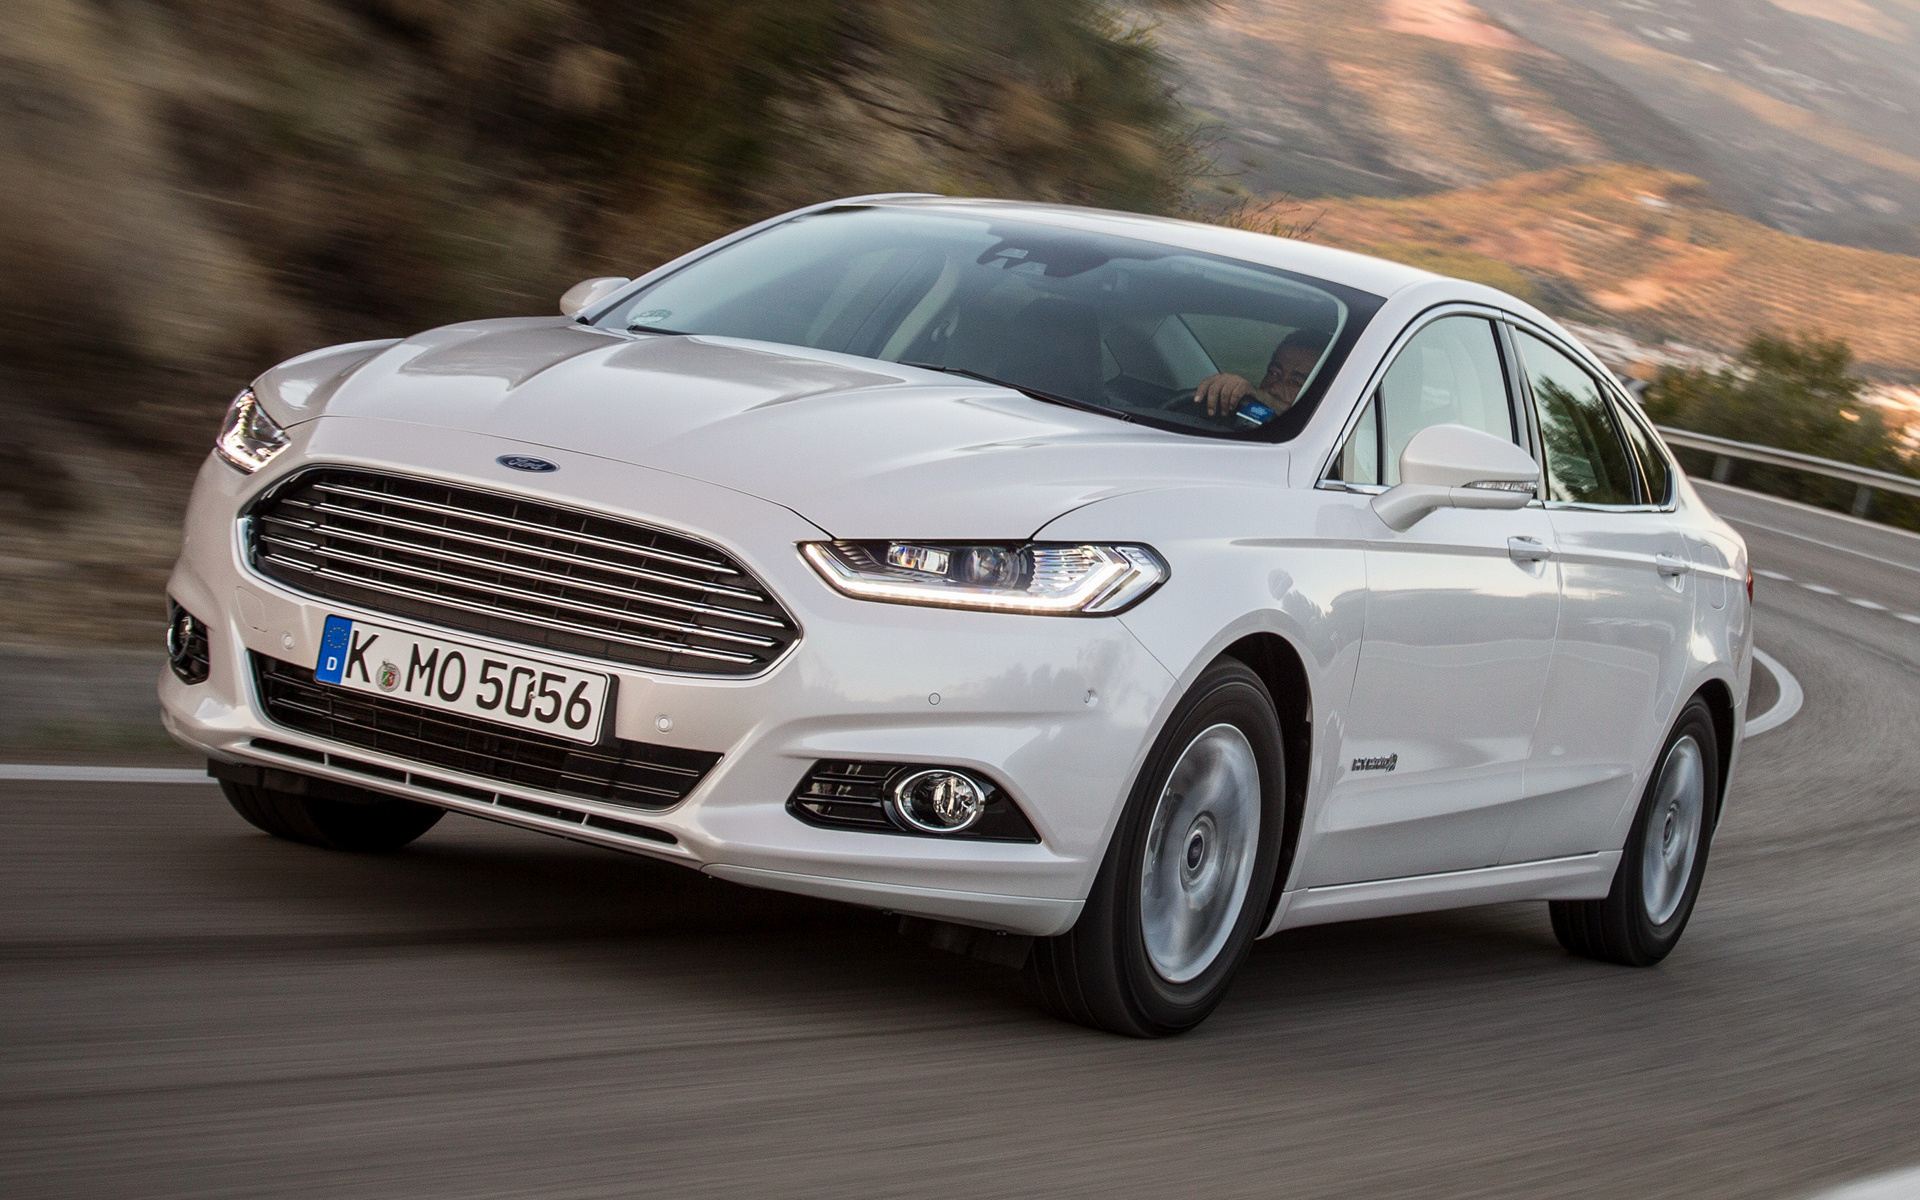 Nuevo Mazda 6 2018 >> Ford Mondeo Hybrid Sedan (2014) Wallpapers and HD Images - Car Pixel